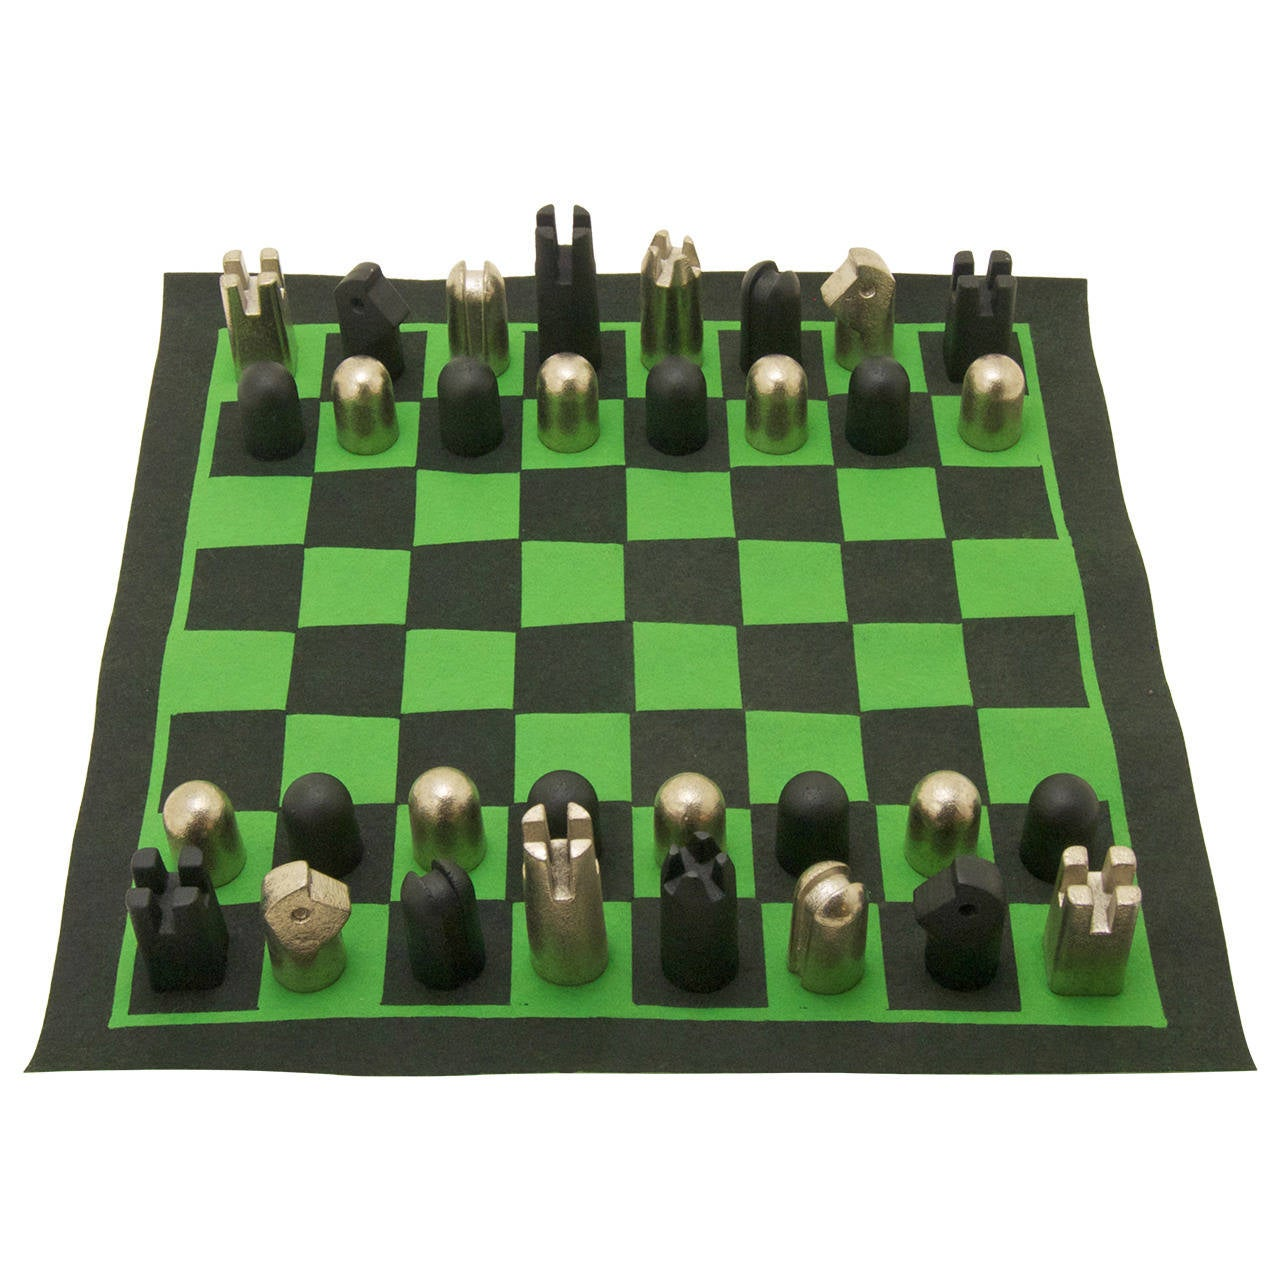 Rare chess set by carl aub ck for sale at 1stdibs - Karim rashid chess set ...